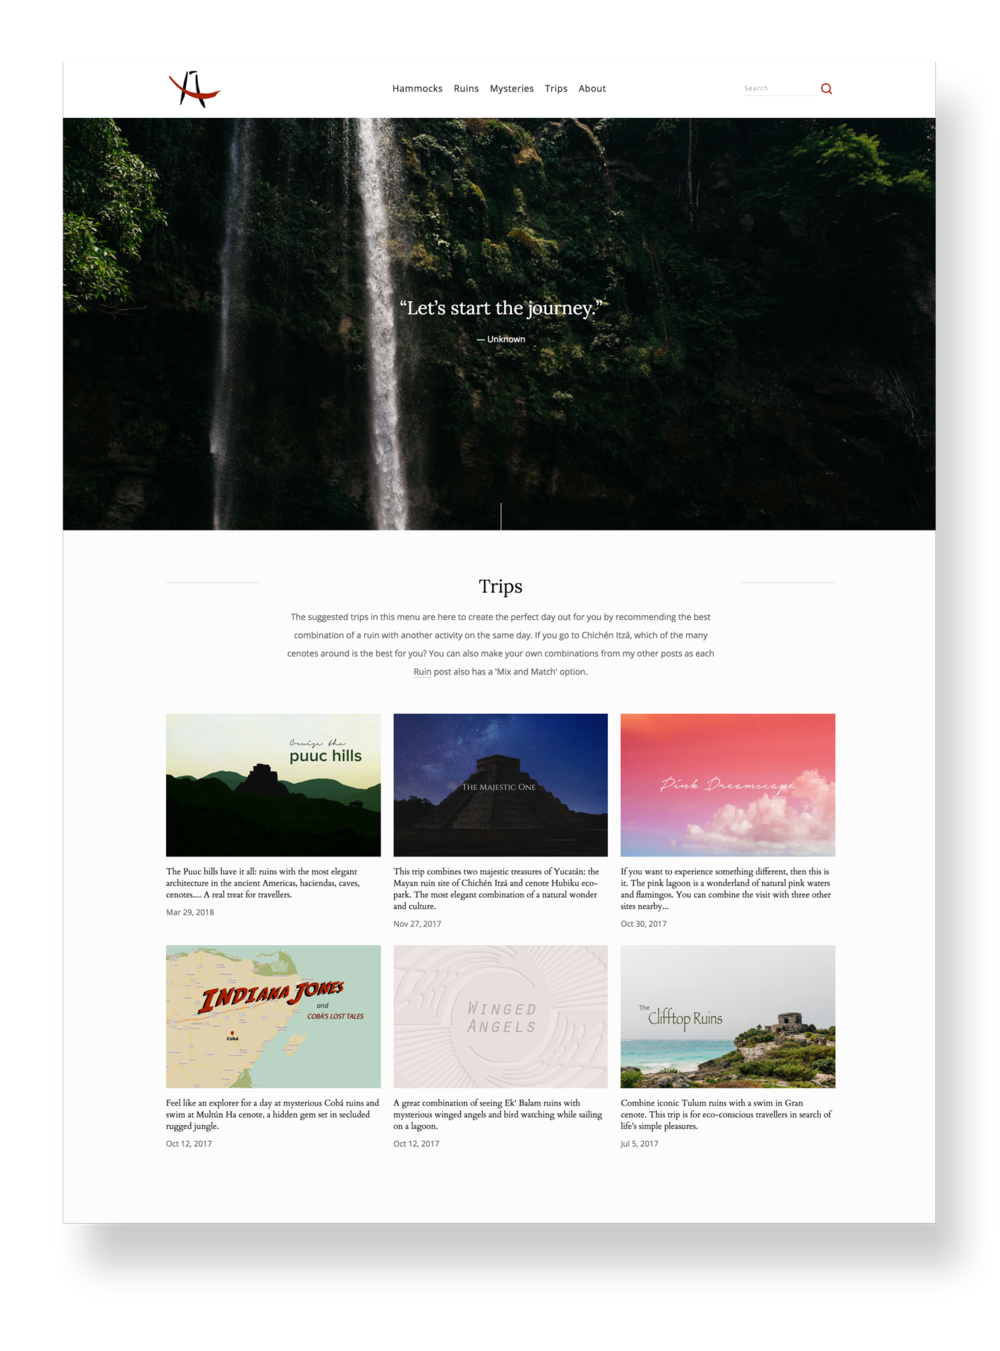 The_Ink_Collective_Creative_Content_Design_Editorial_Agency_Paris_Sydney_Brand_Identity_Web_Design_Creative_Direction_Photography_Travel_Mexico_Hammocks_and_Ruins_Trips_Page_1.png